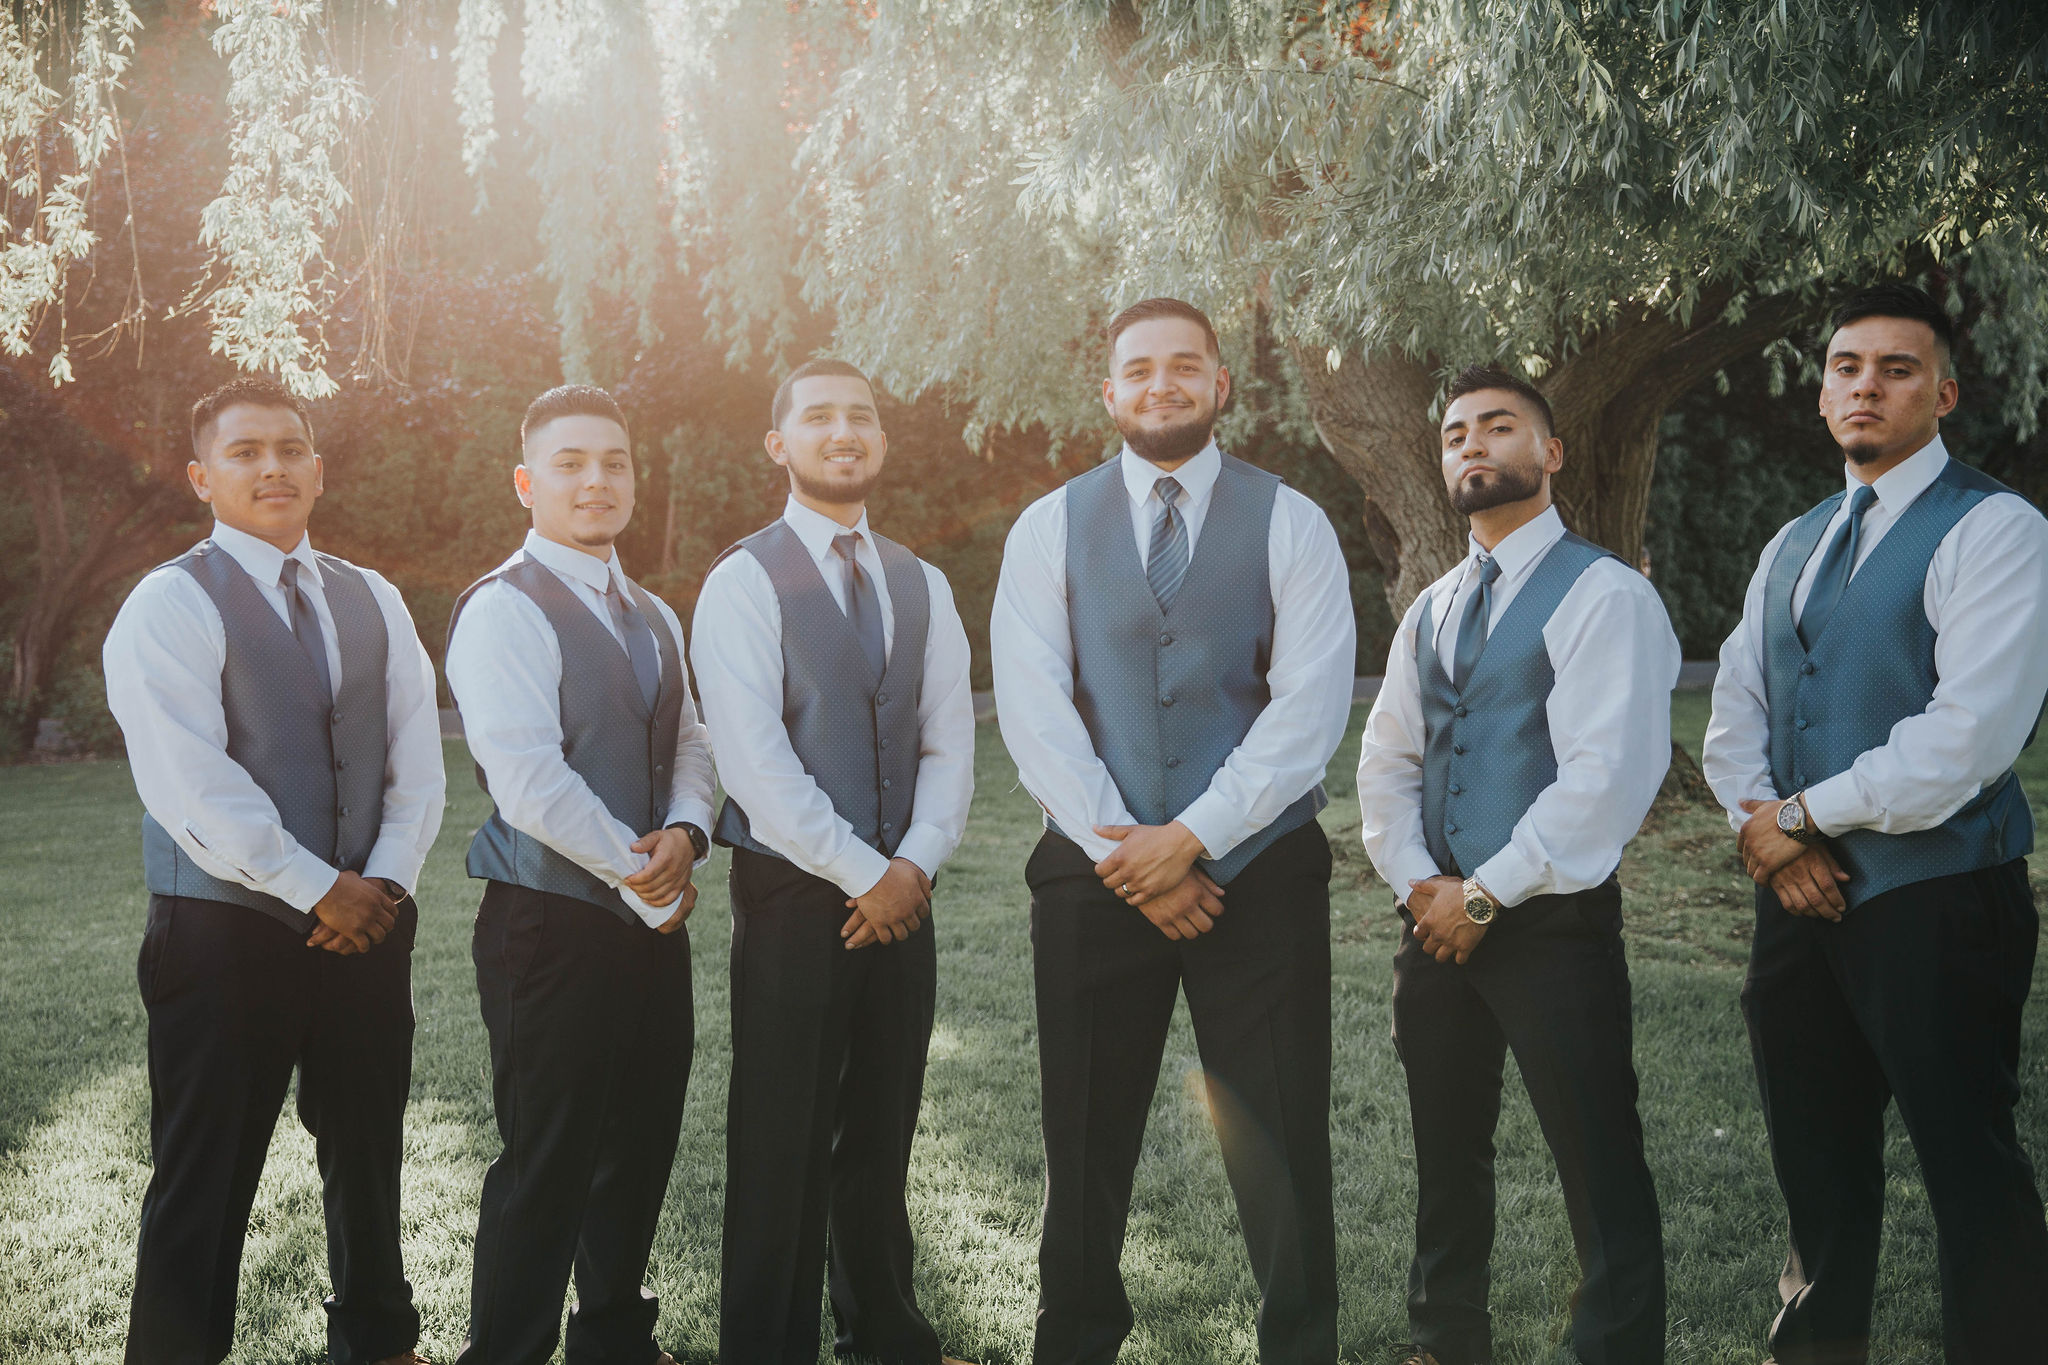 groomsmen tough pose spokane wedding bride